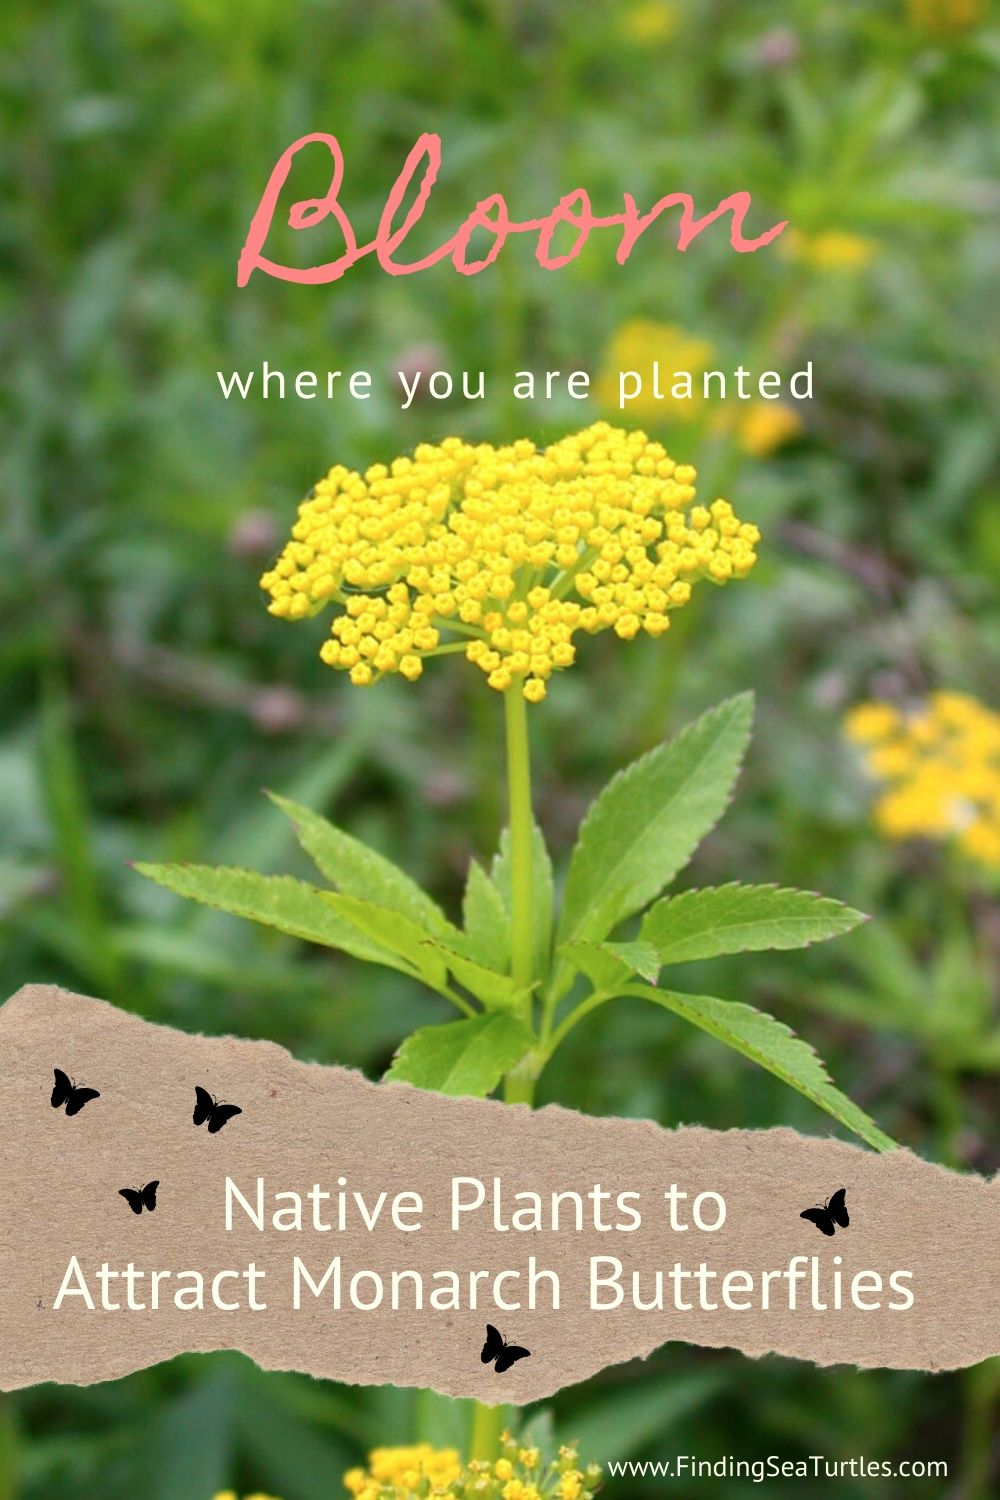 Bloom where you are planted Native Plants to Attract Monarch Butterflies #MonarchButterflies #Butterflies #SavetheMonarchs #Gardening #Plants #GardenPollinators #AttractMonarchButterflies #NectarRichPlants #BeneficialForPollinators